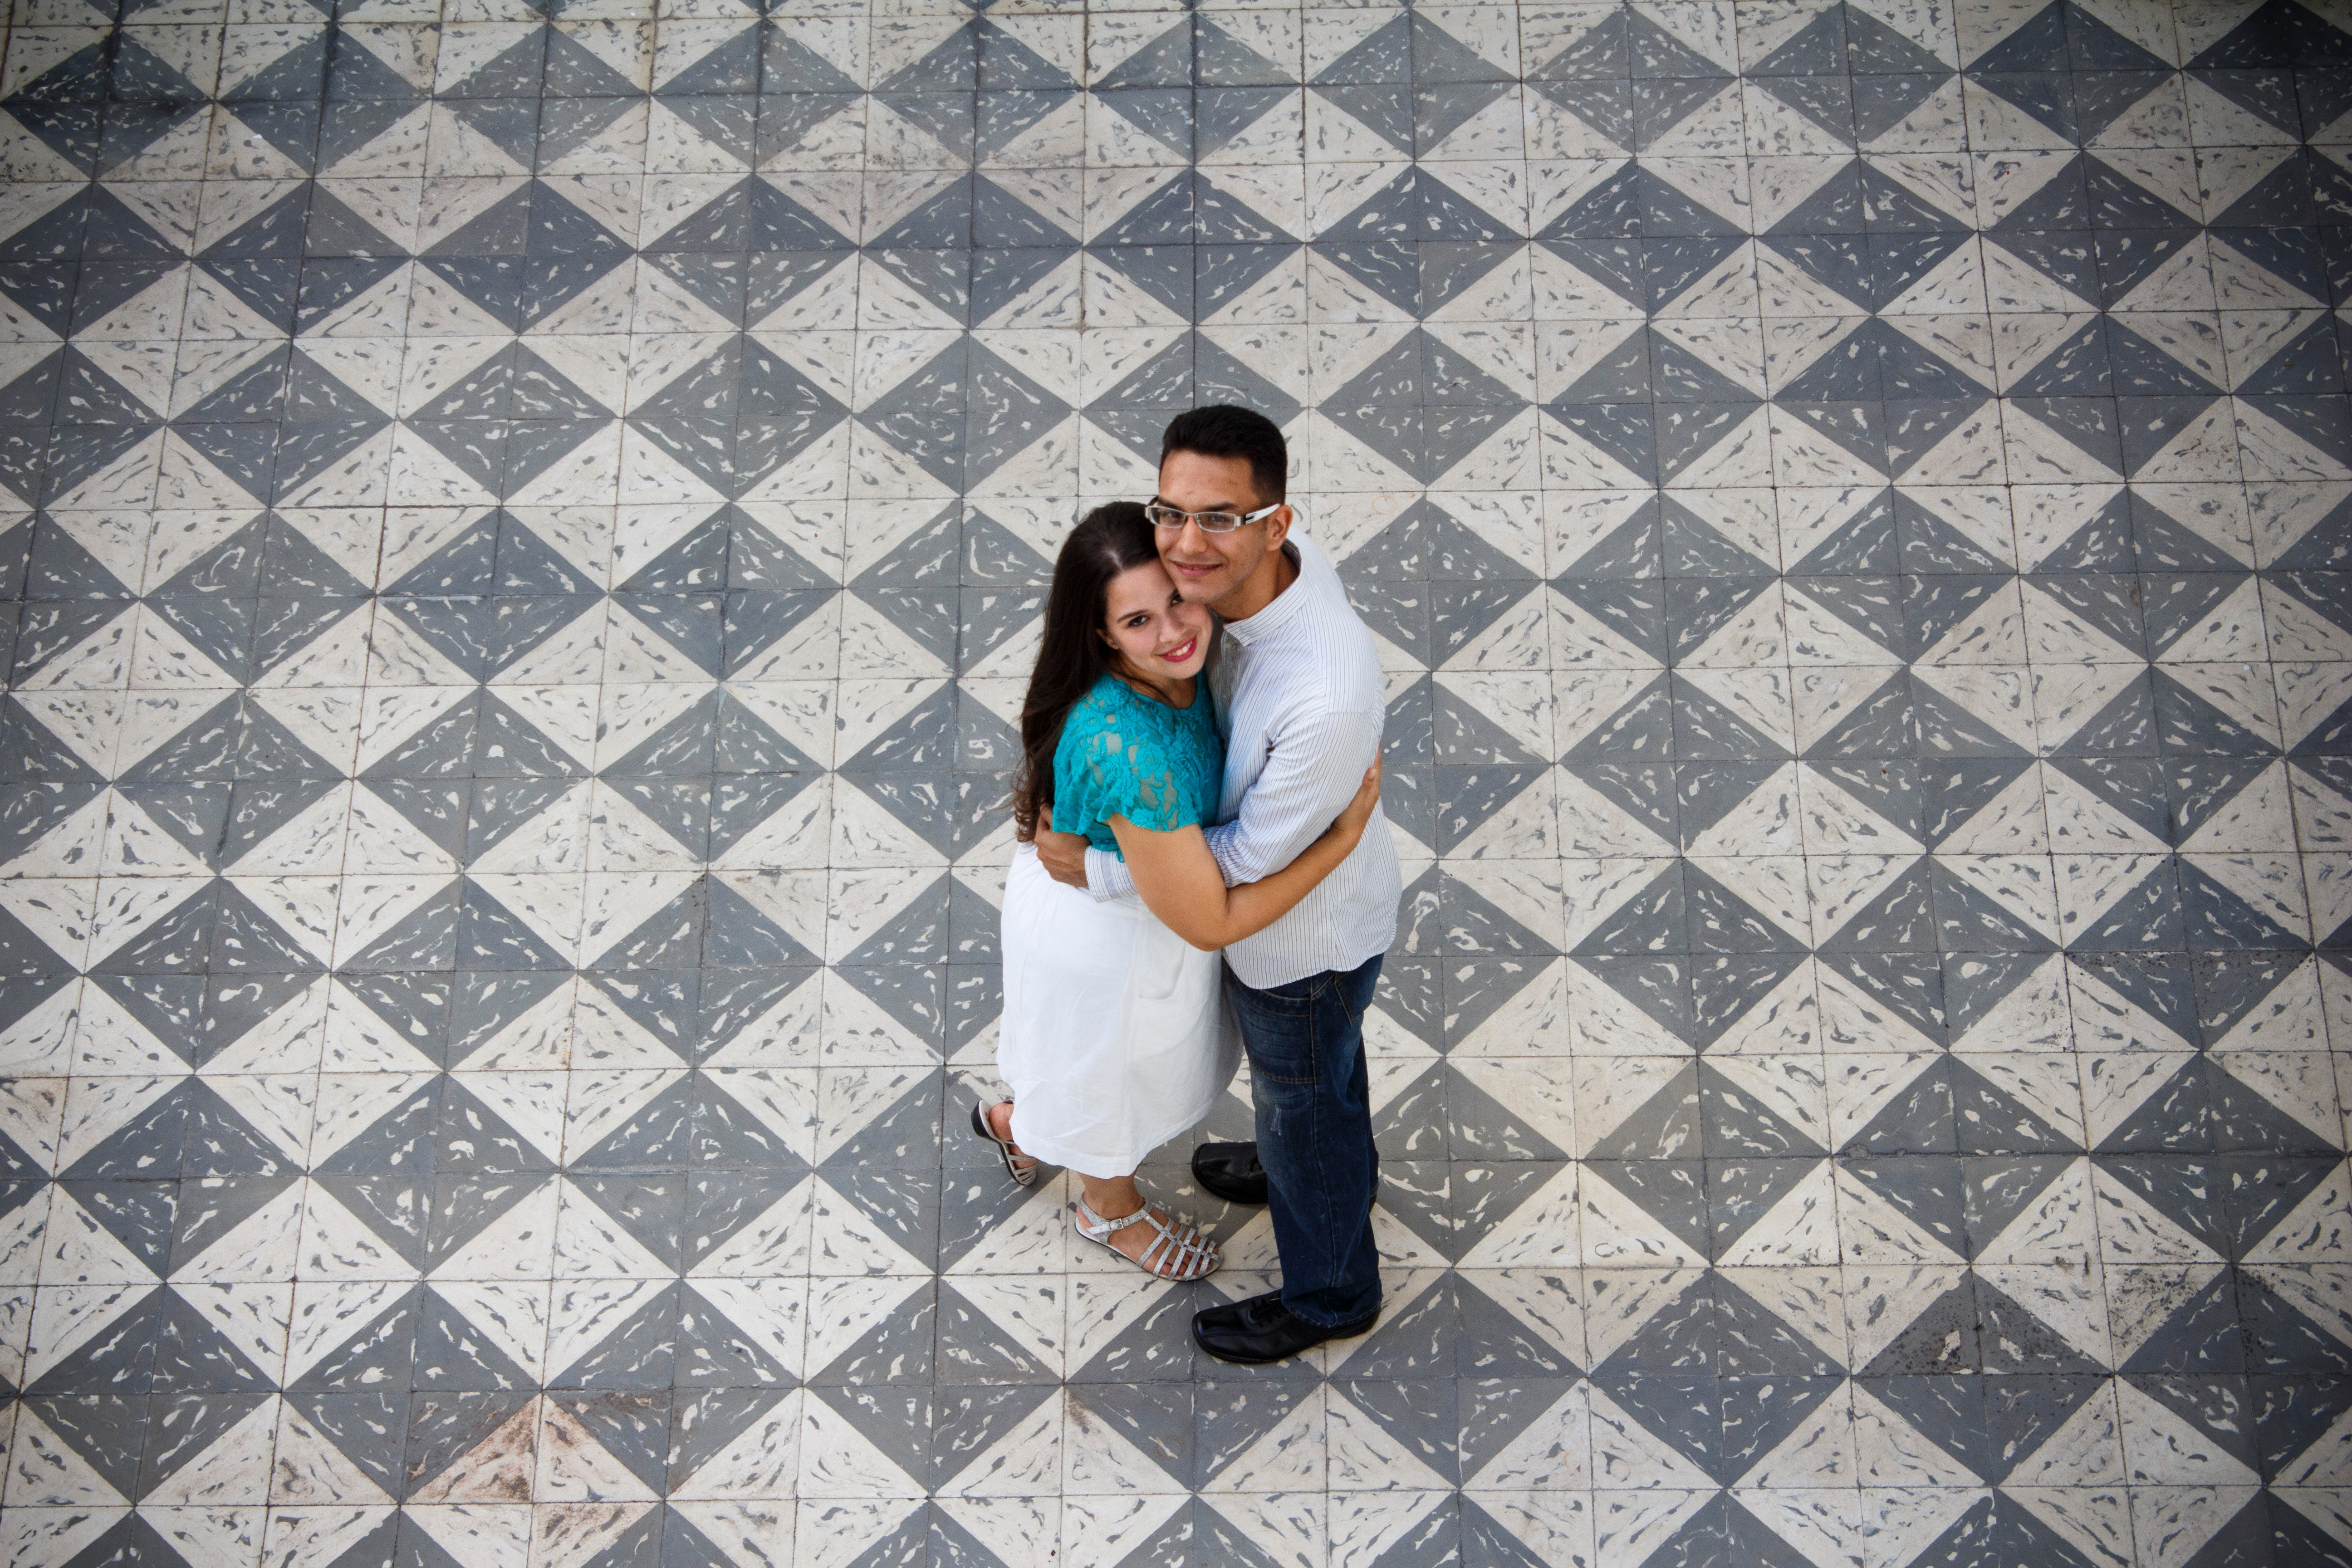 Photography of Couple Hugging Each Other, Adult, Pattern, Wear, Togetherness, HQ Photo